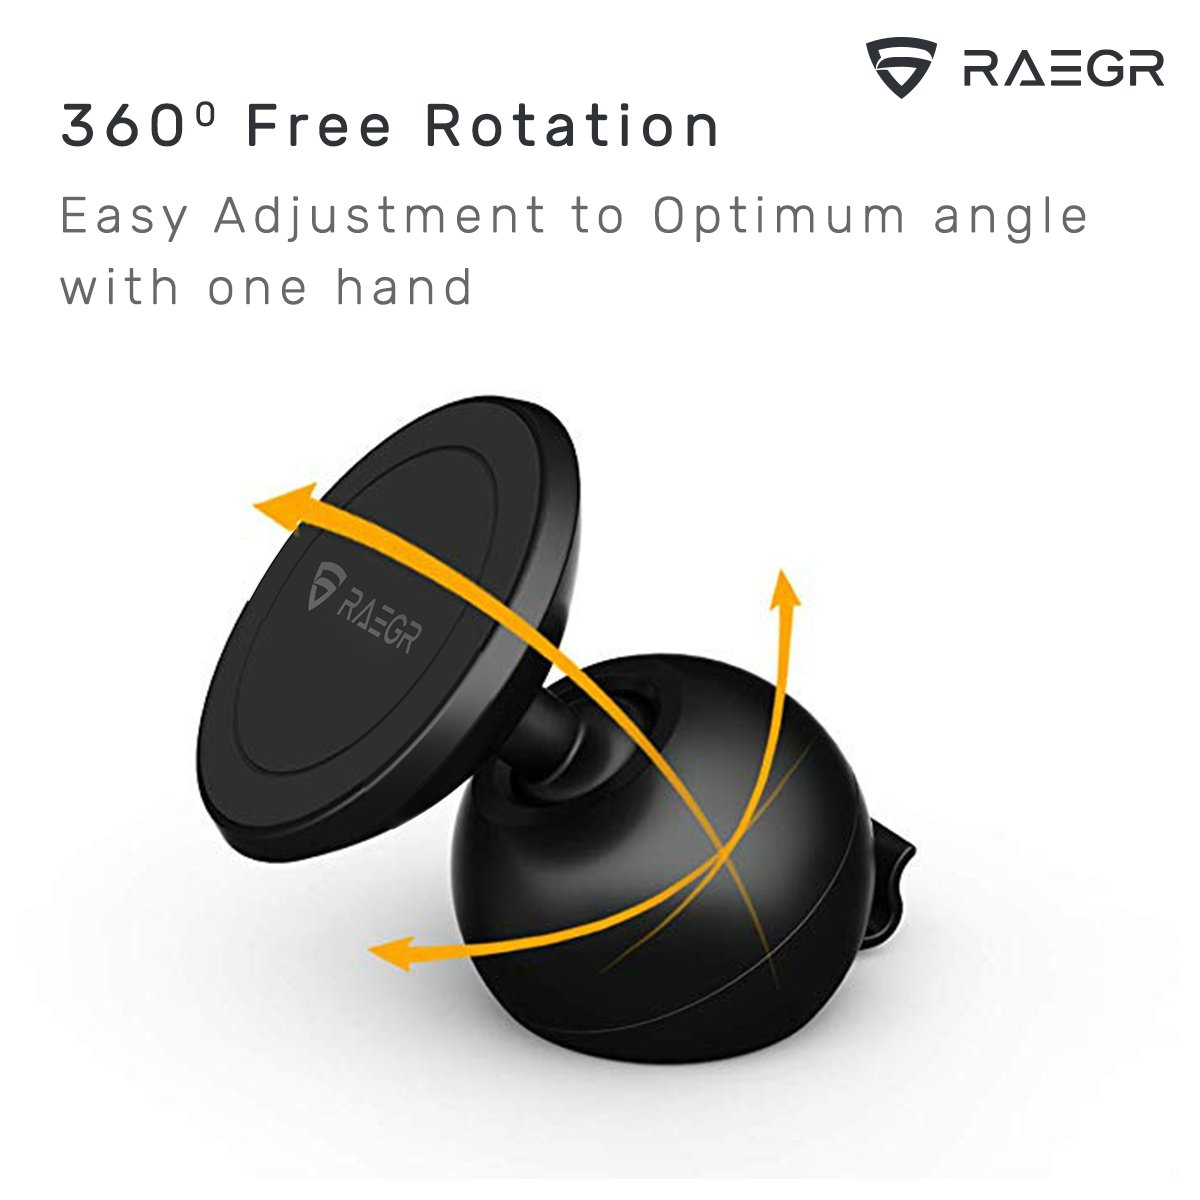 RAEGR MM20 Magnetic Car Mount Holder, Dashboard